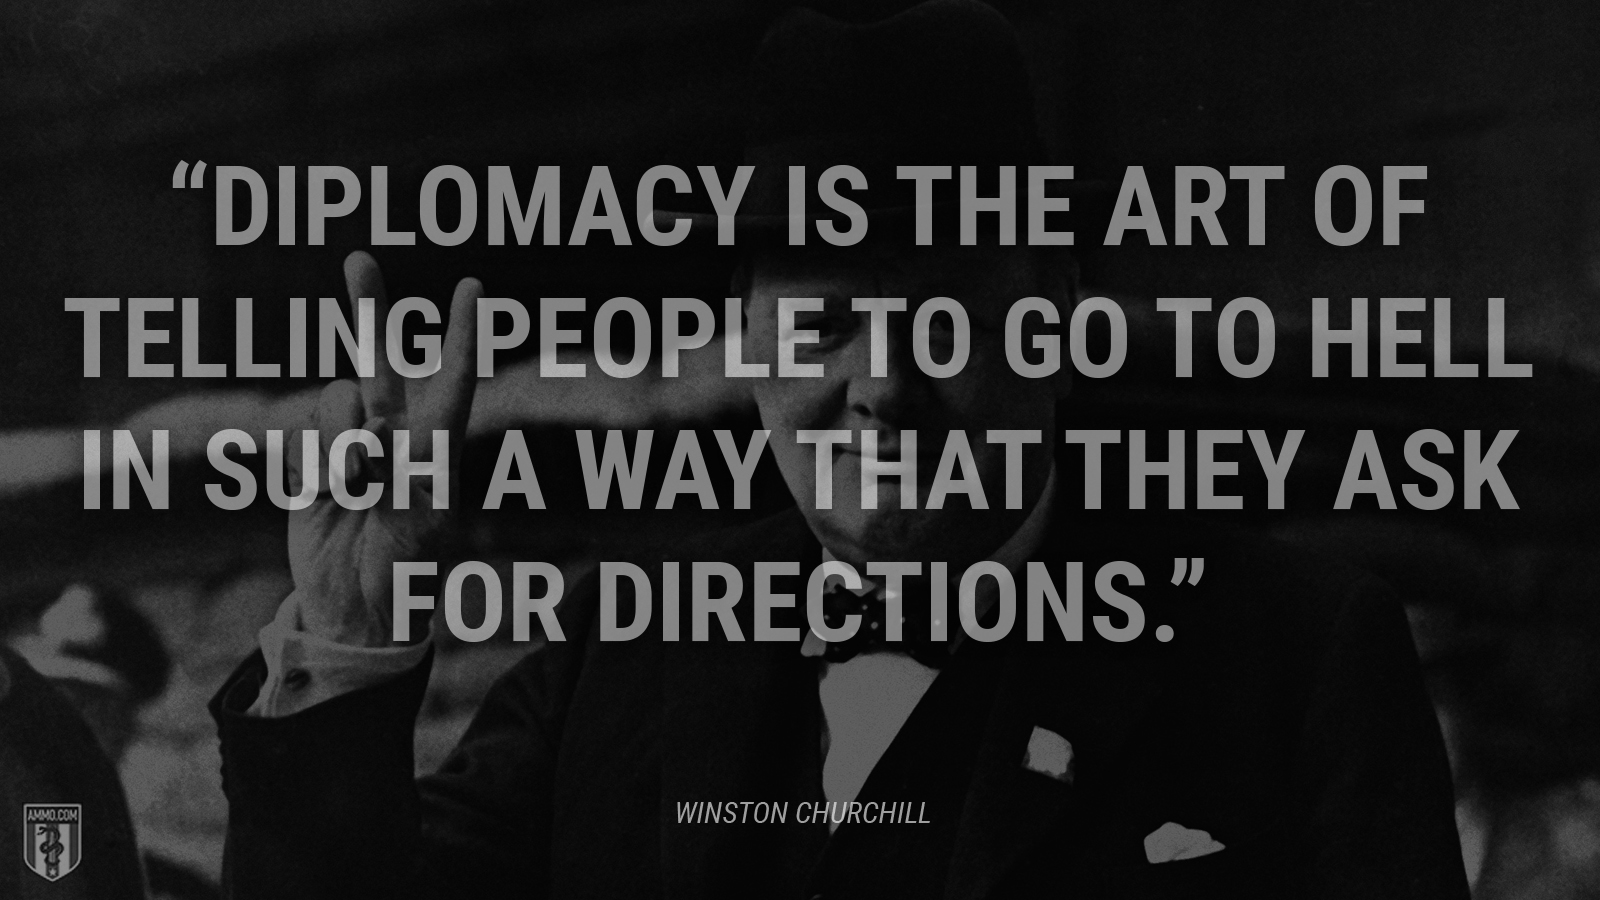 """Diplomacy is the art of telling people to go to hell in such a way that they ask for directions."" - Winston Churchill"